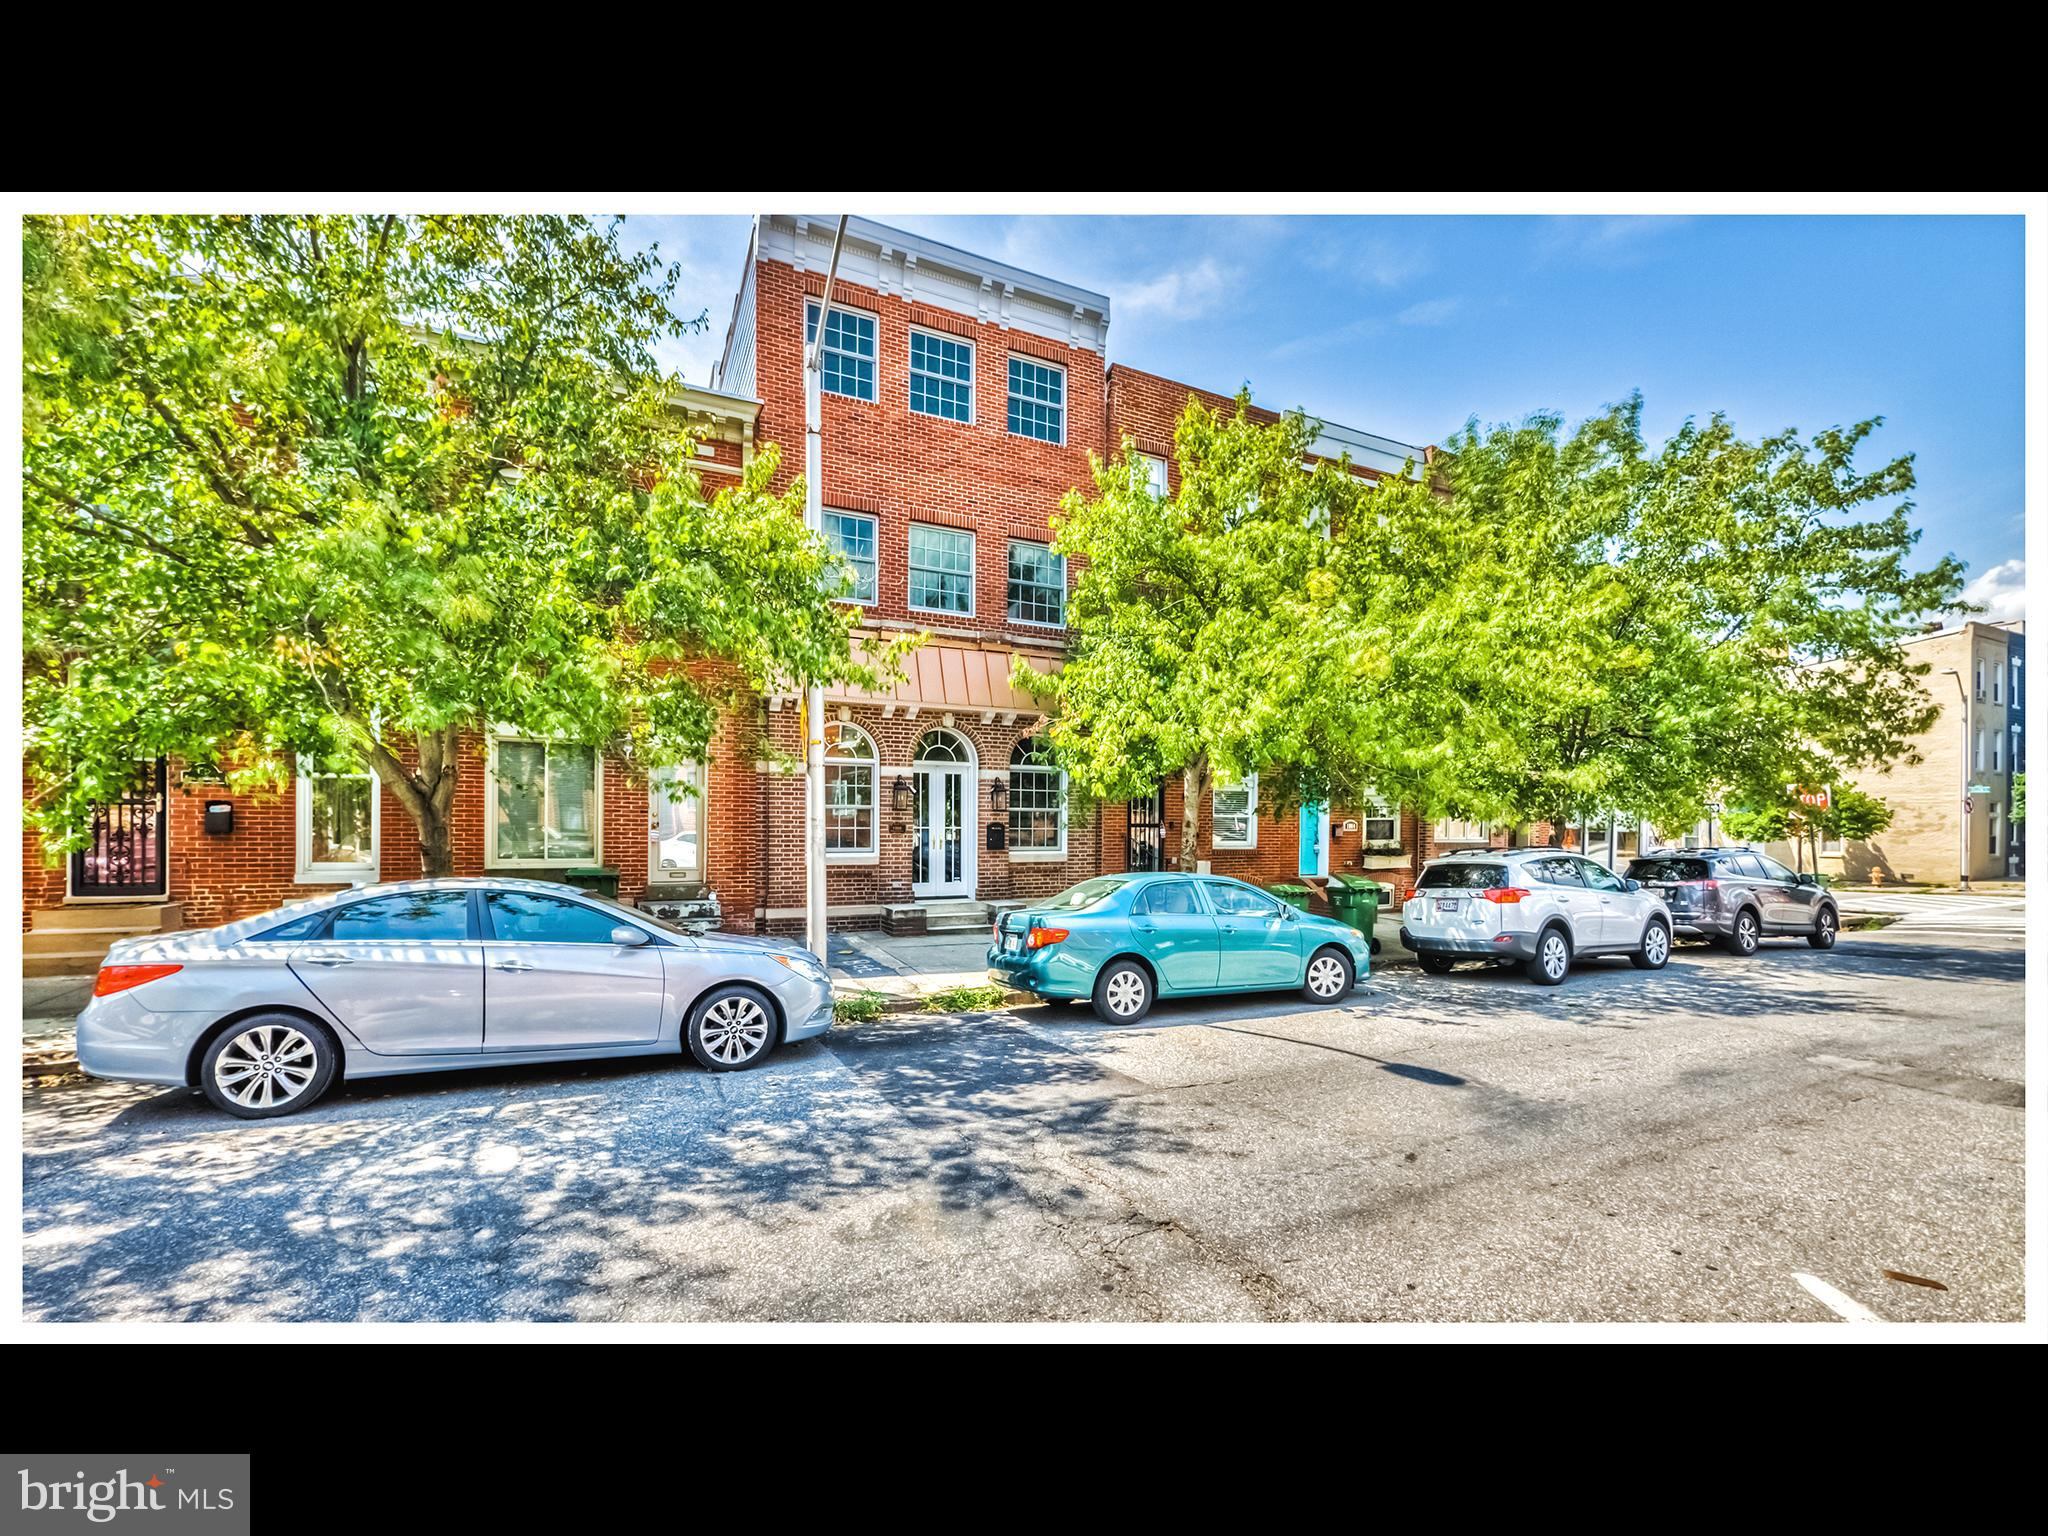 1008 S KENWOOD AVENUE, BALTIMORE, MD 21224